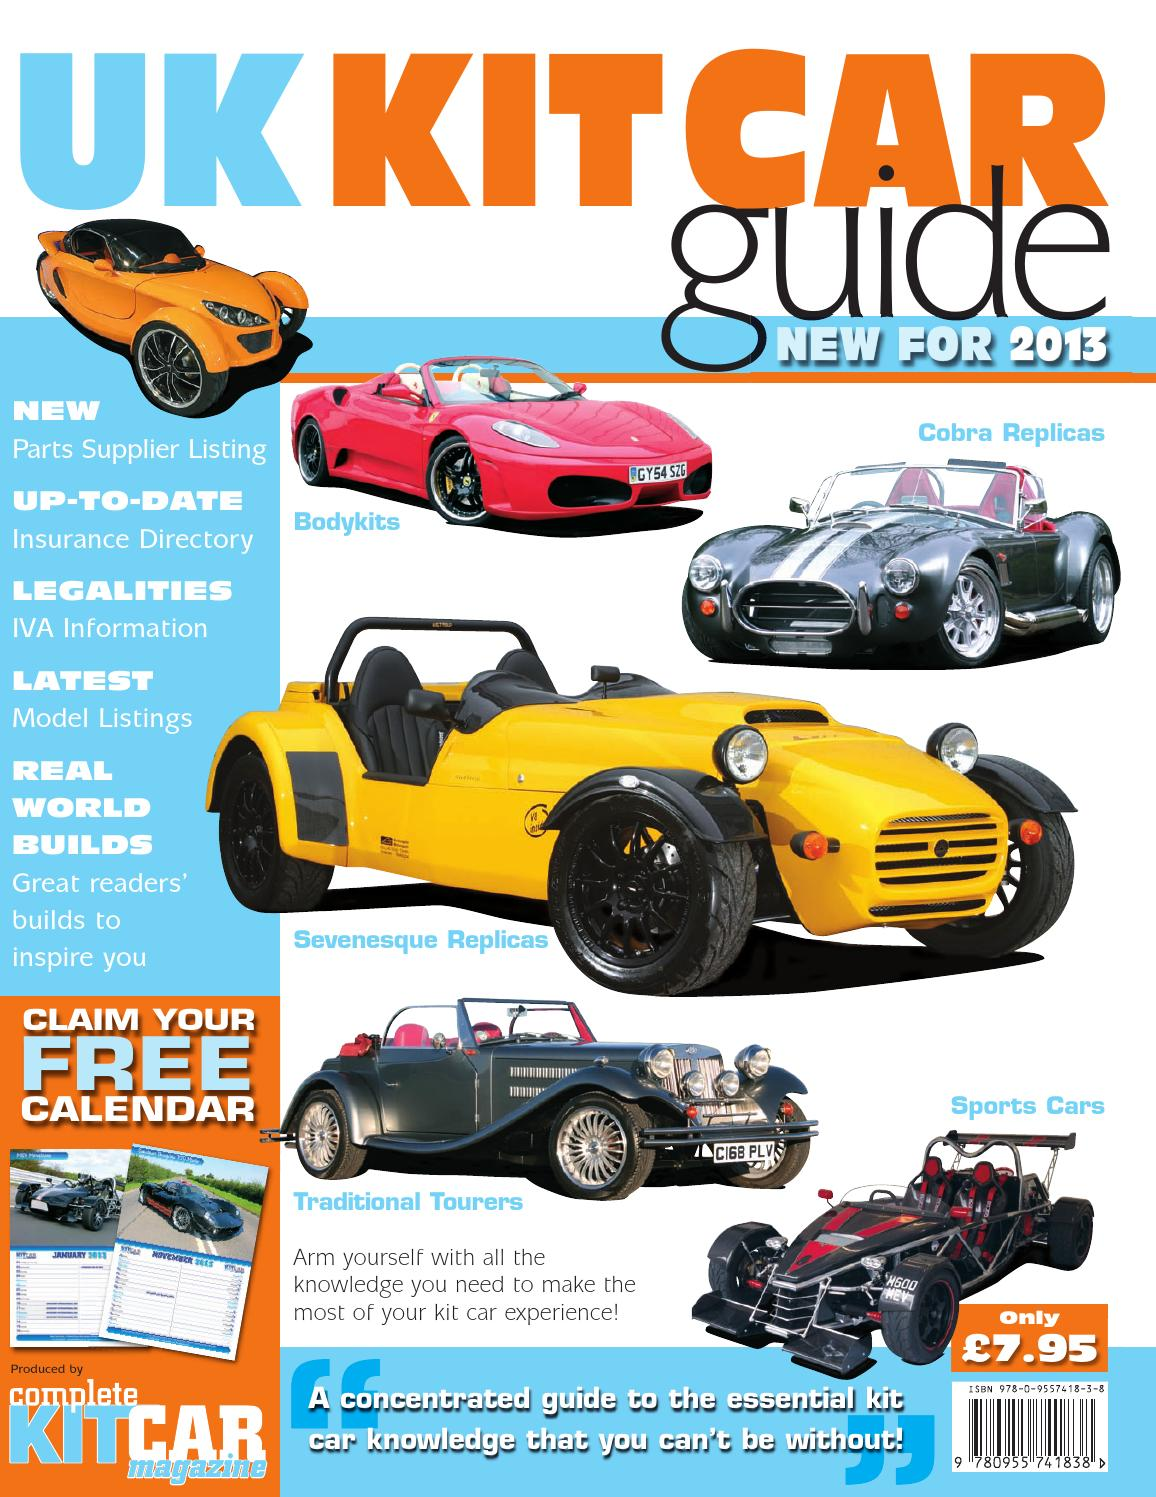 uk kit car guide 2013 by performance publishing ltd issuu. Black Bedroom Furniture Sets. Home Design Ideas